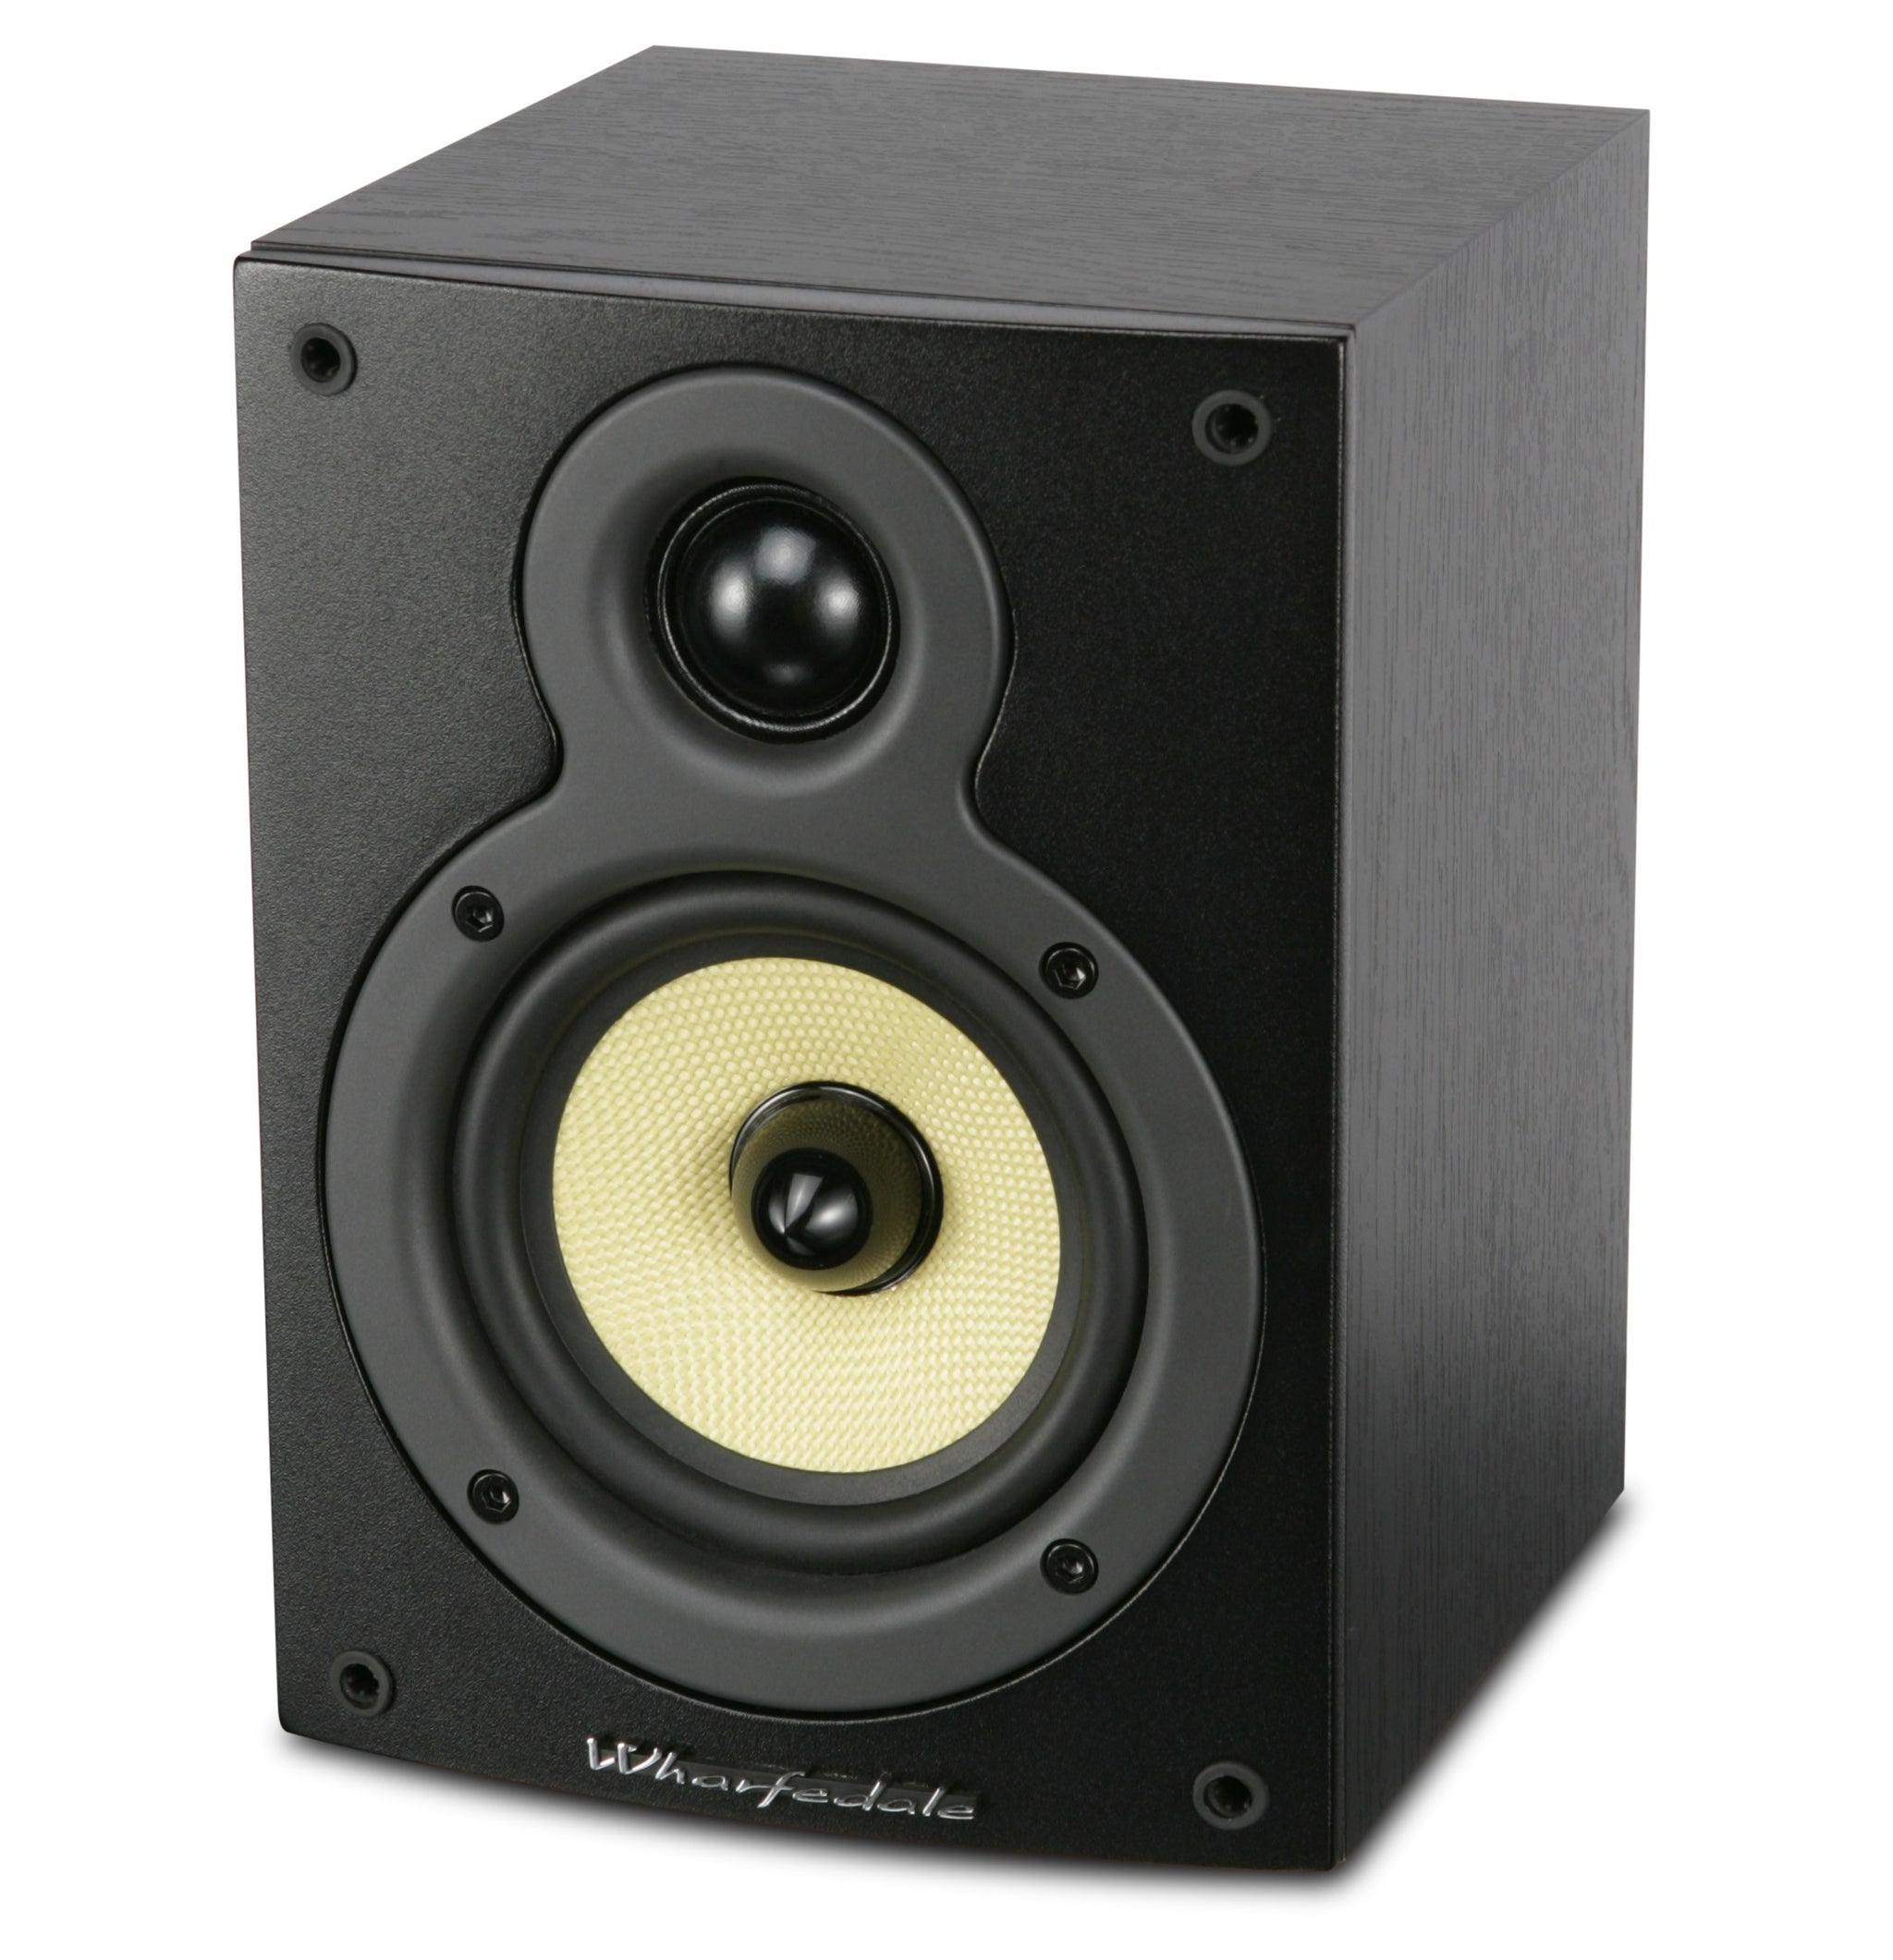 Crystal 4.1 Bookshelf Speakers